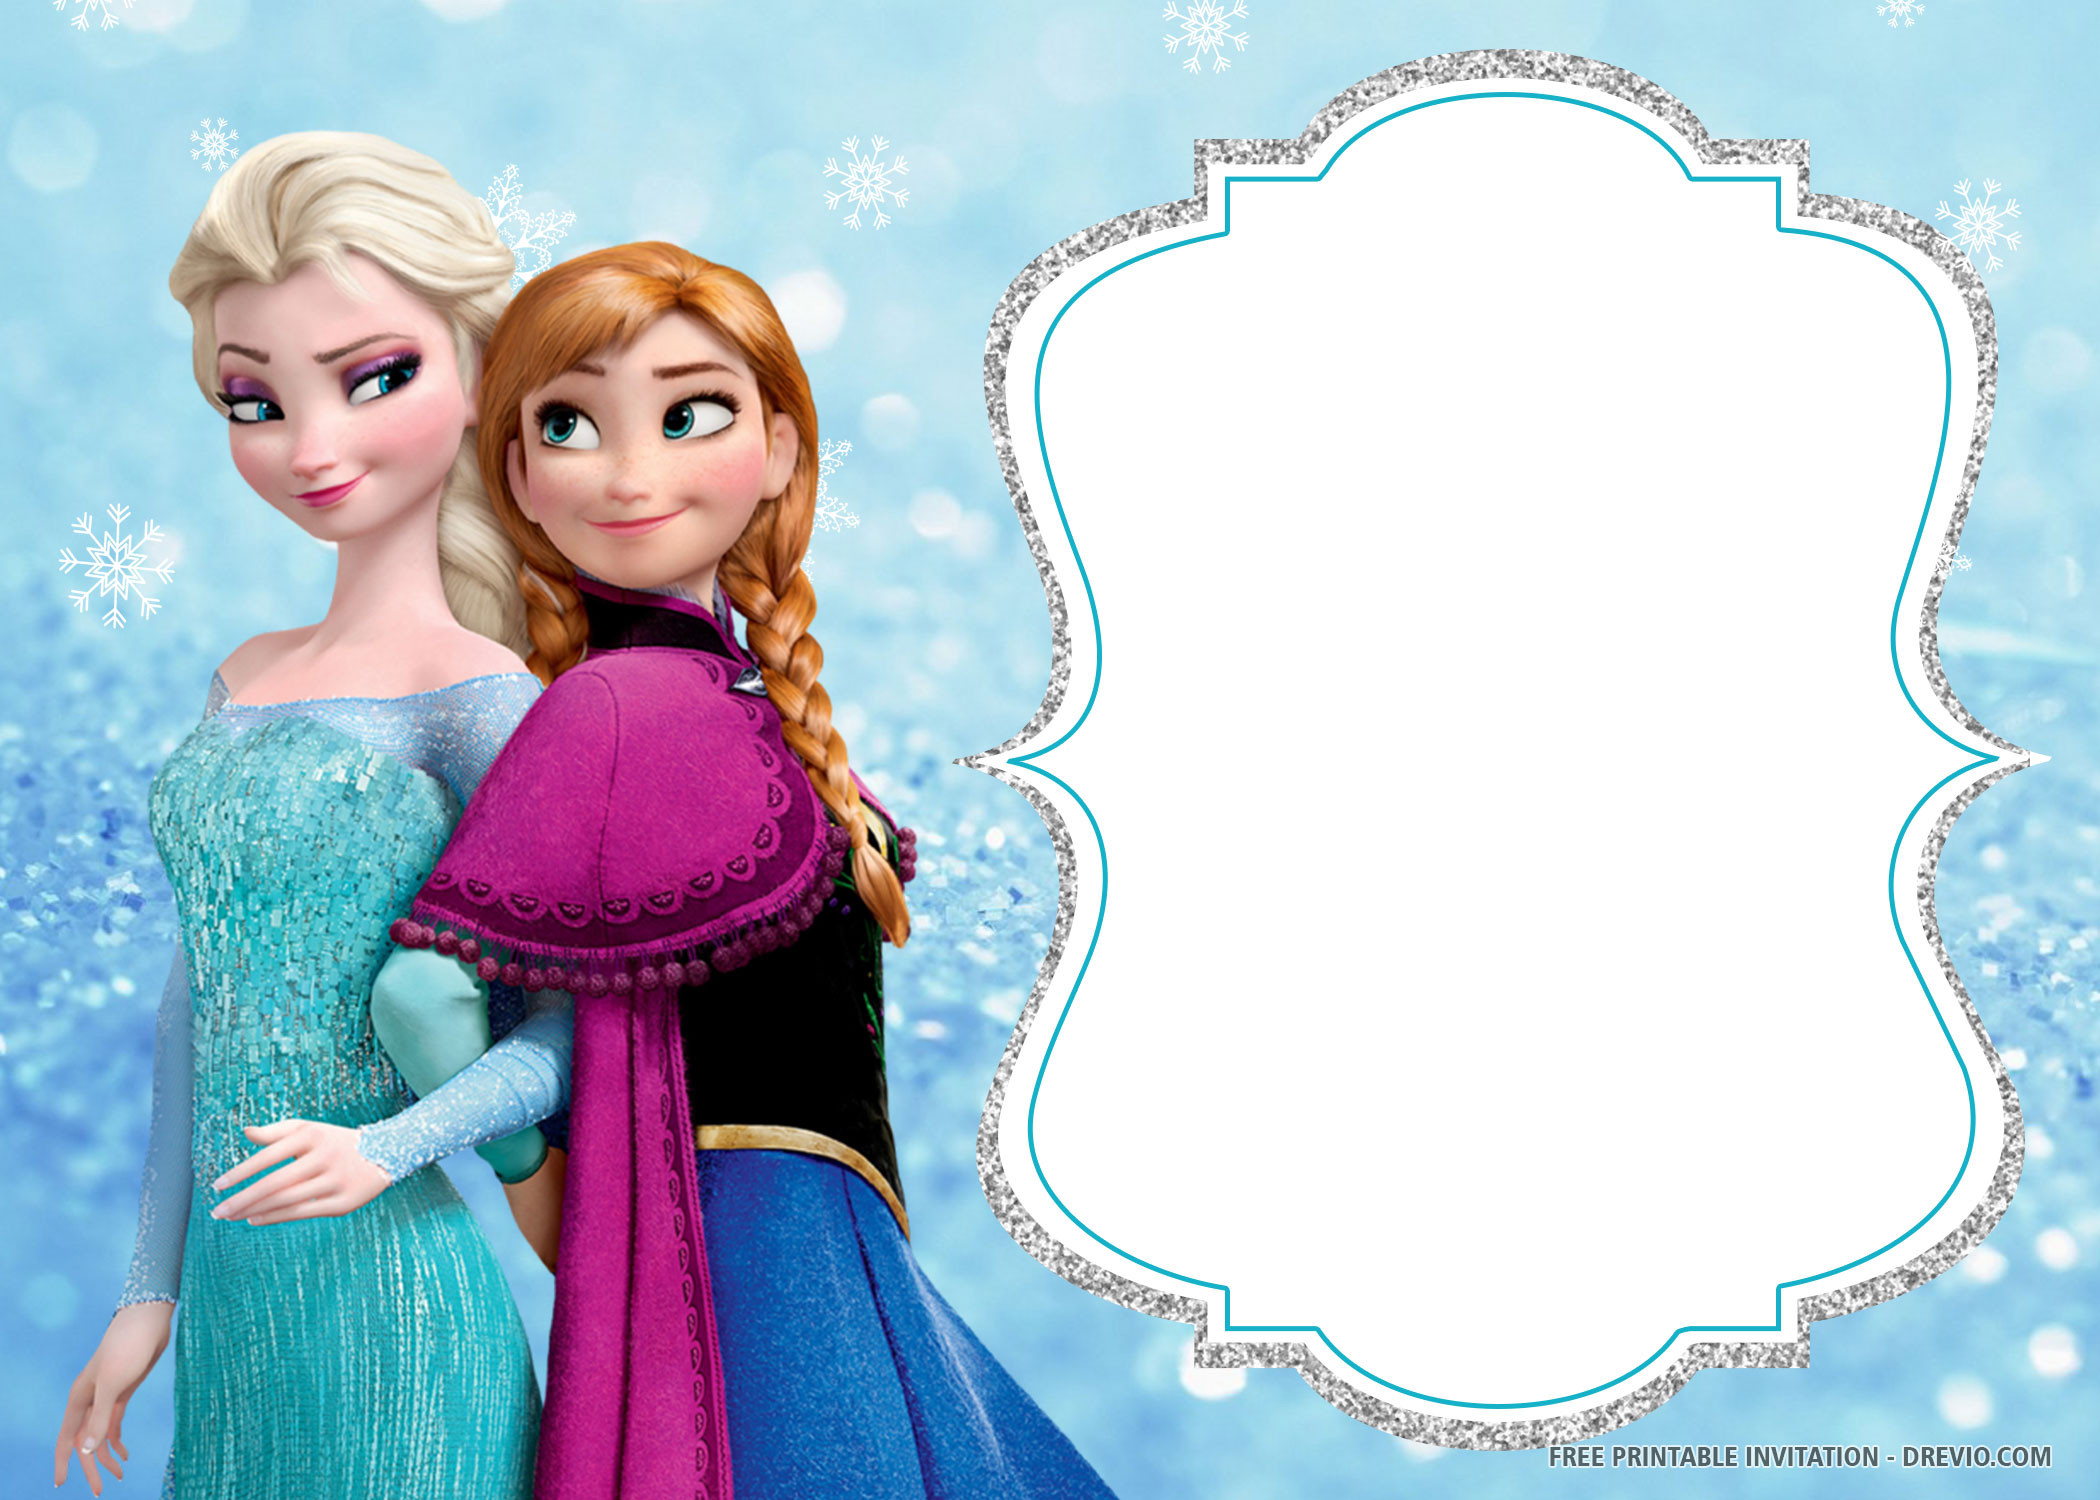 Frozen Printable Invitation Free Printable Frozen Birthday Invitation Templates